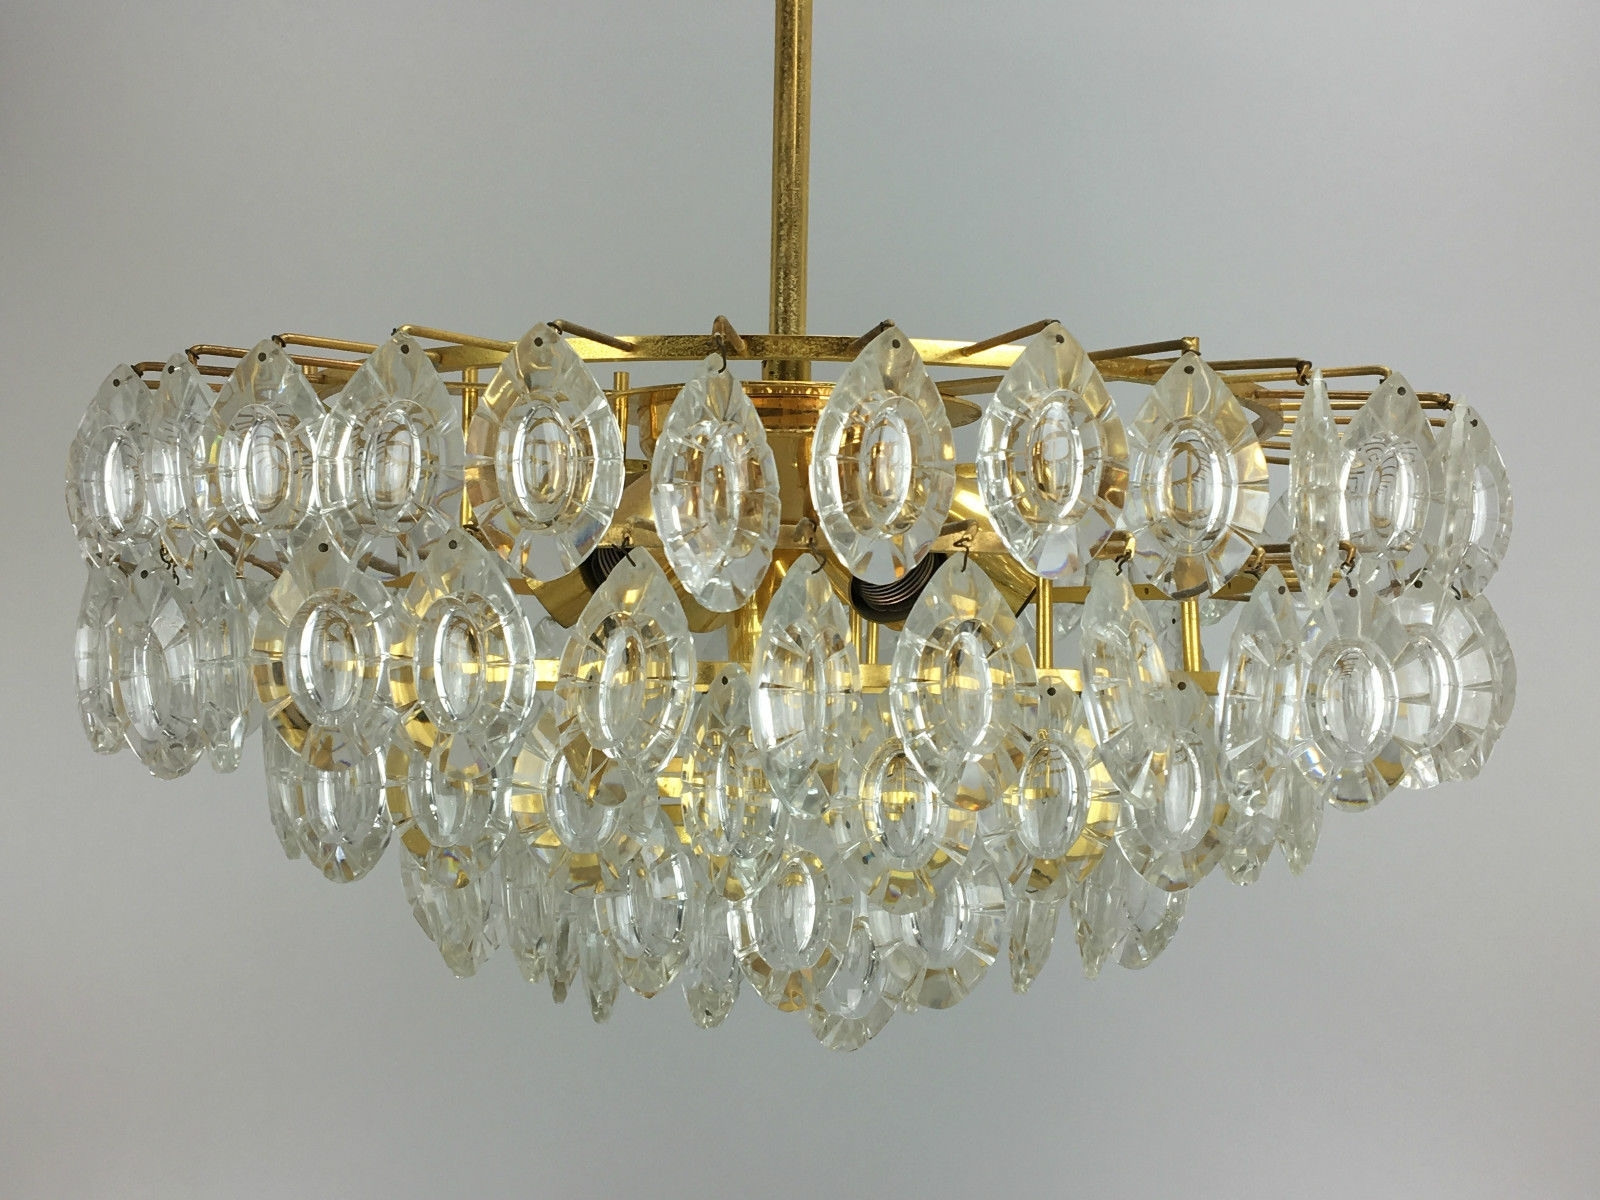 Brass And Glass Chandelier With Regard To Trendy Brass & Glass Chandelier From Kinkeldey, 1960S For Sale At Pamono (View 8 of 20)